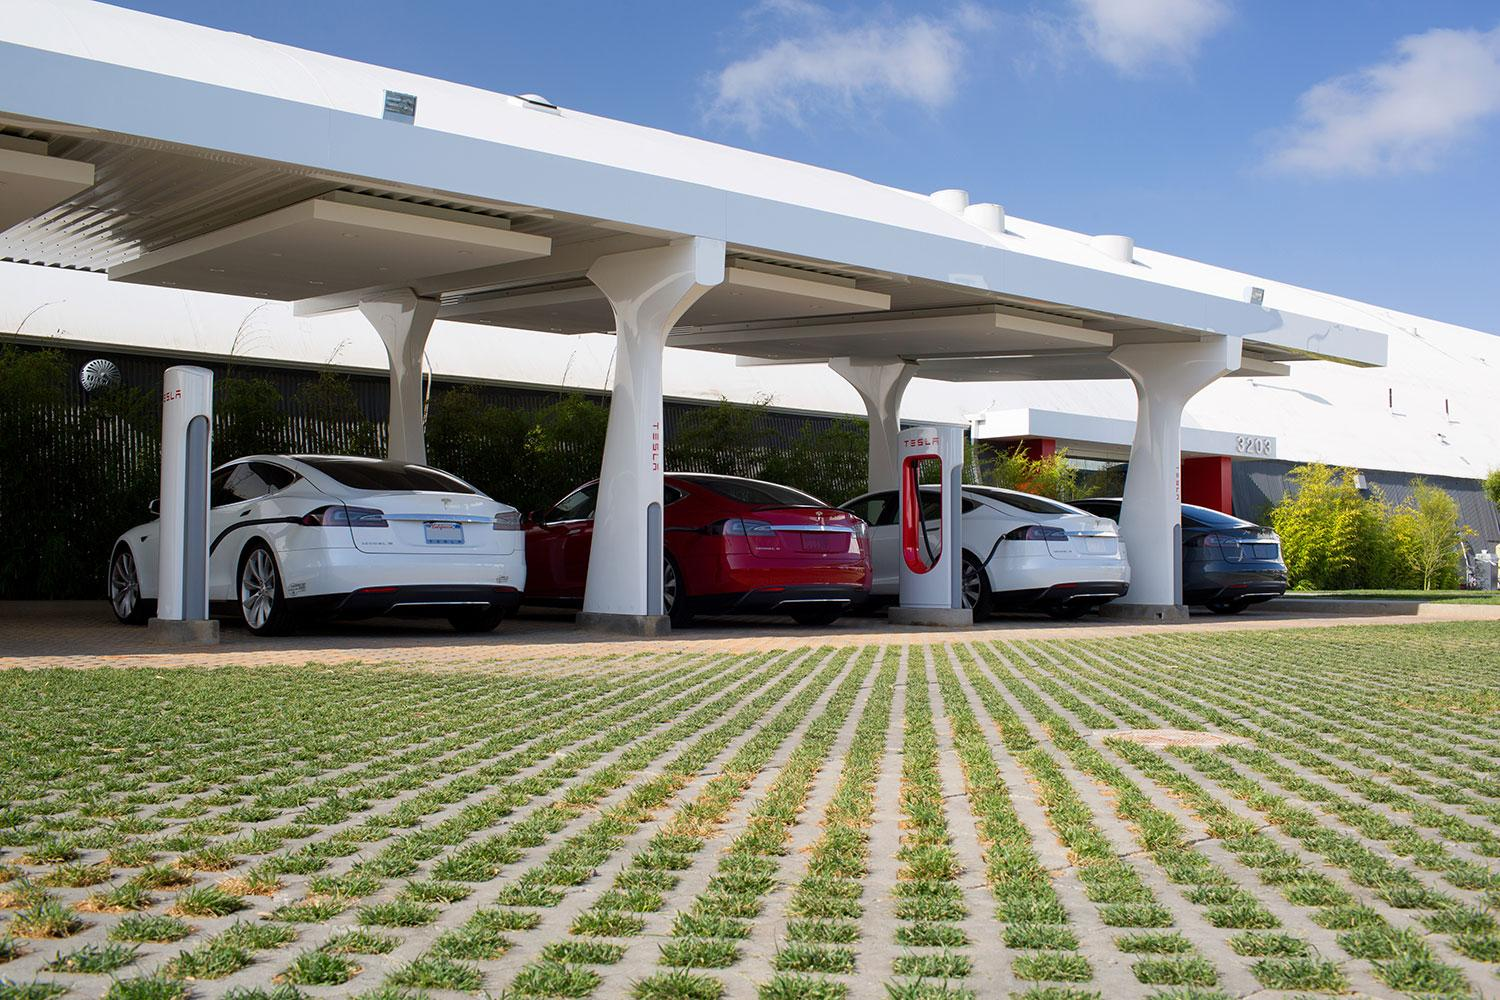 House Charging Station Can Elon Musk Solve The World S Energy Needs With Cars And